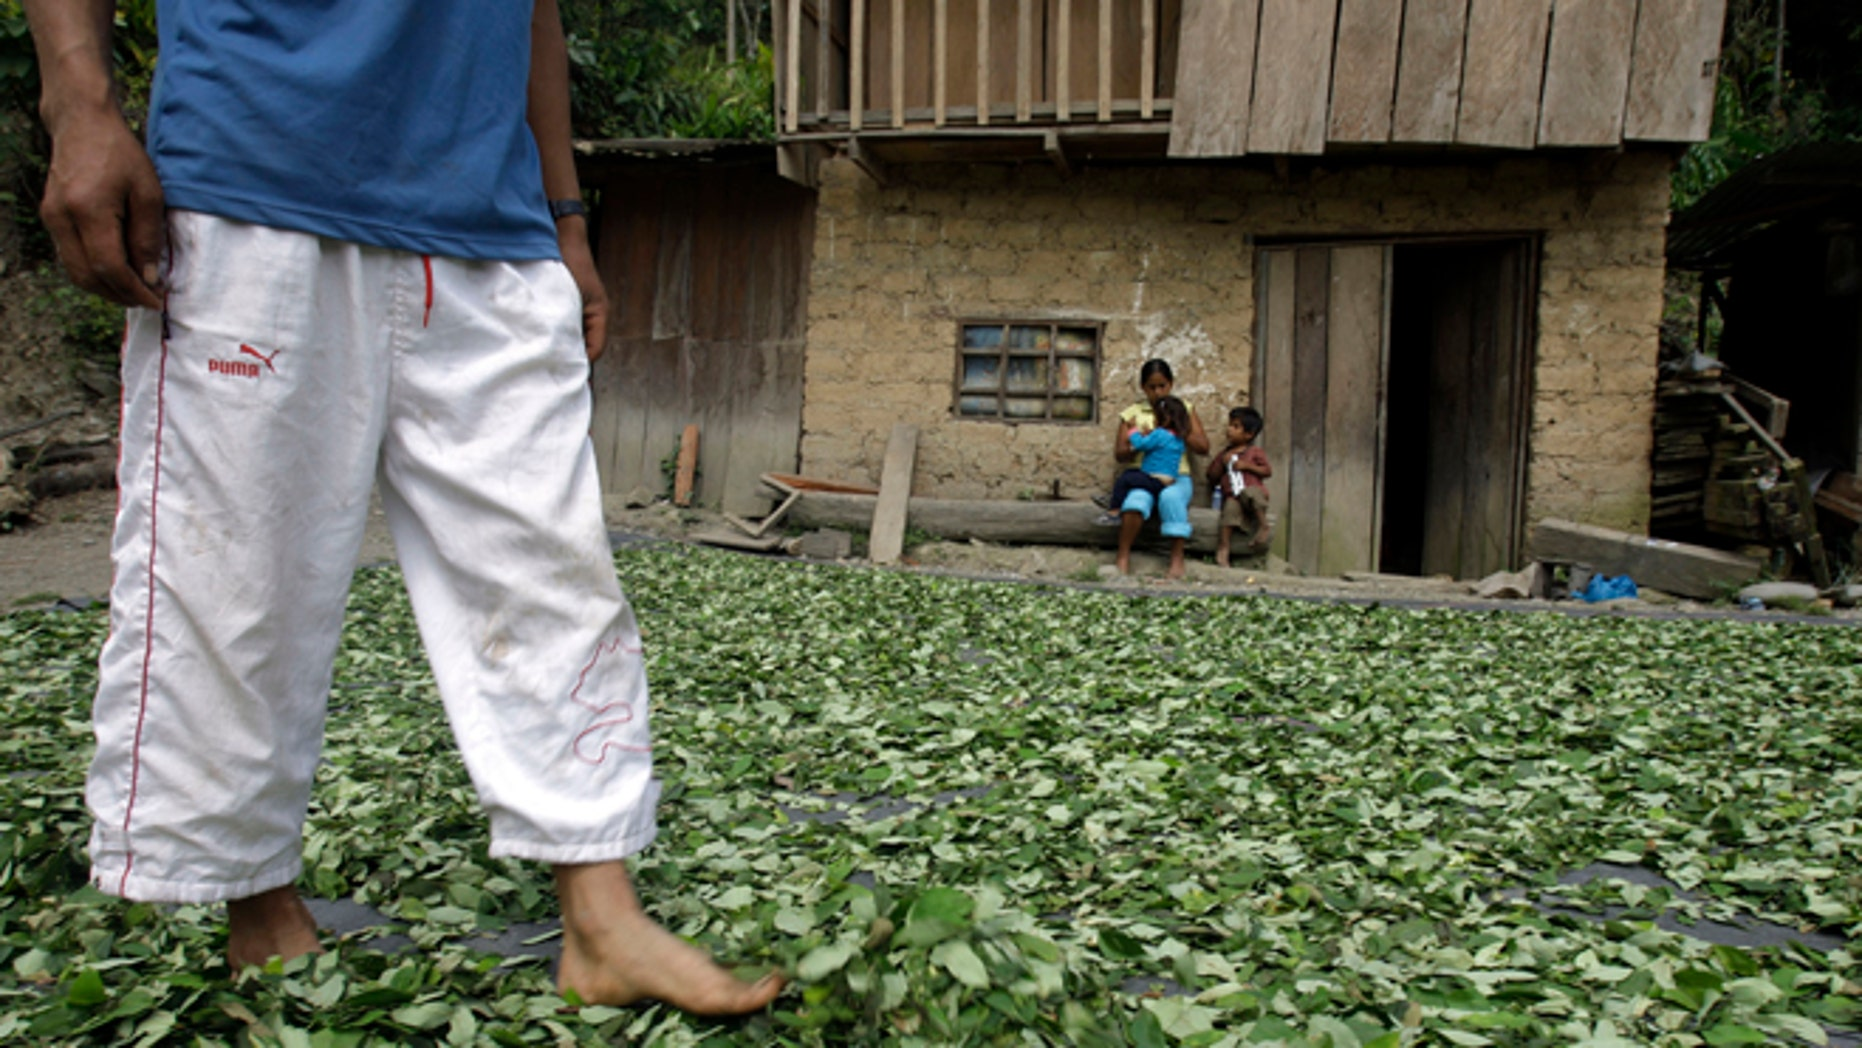 A coca farmer walks on drying coca leaves as his family looks on in Omaya in Peru's Apurimac valley.